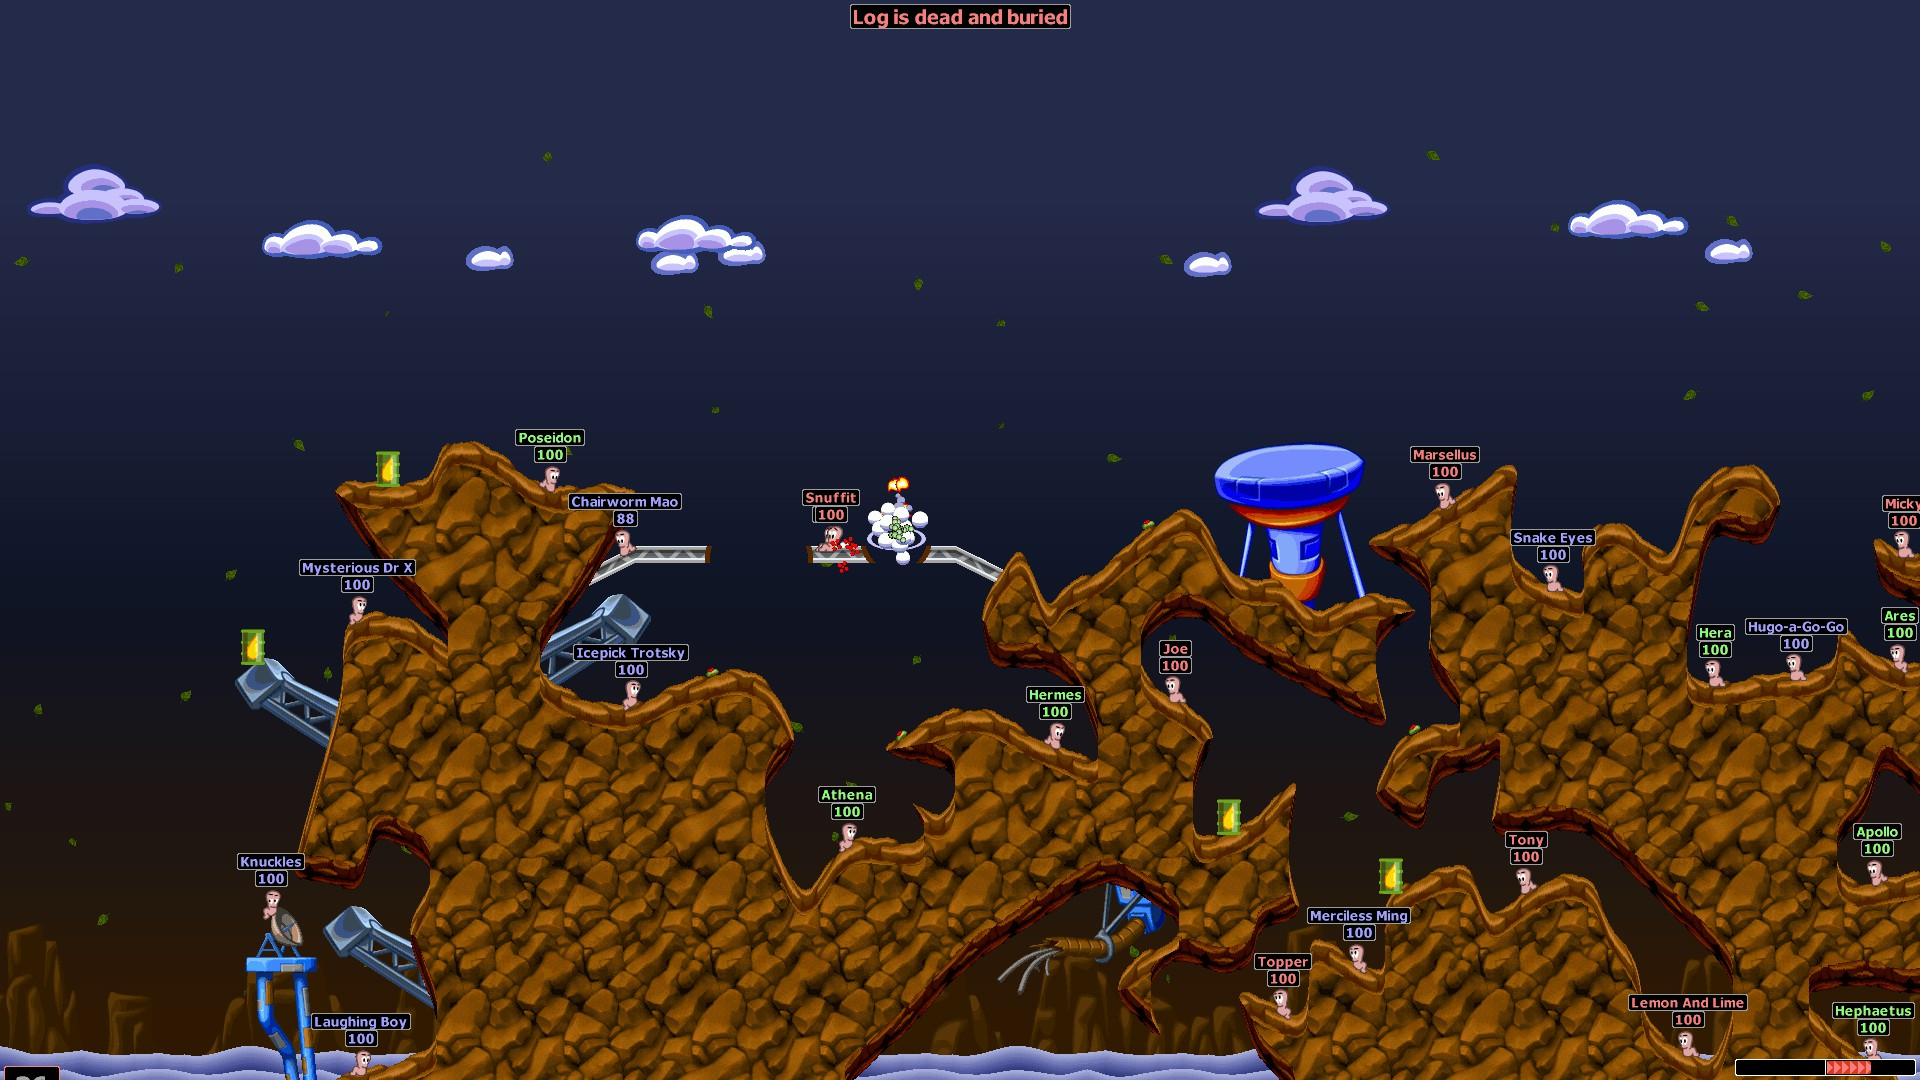 worms game free download for windows xp